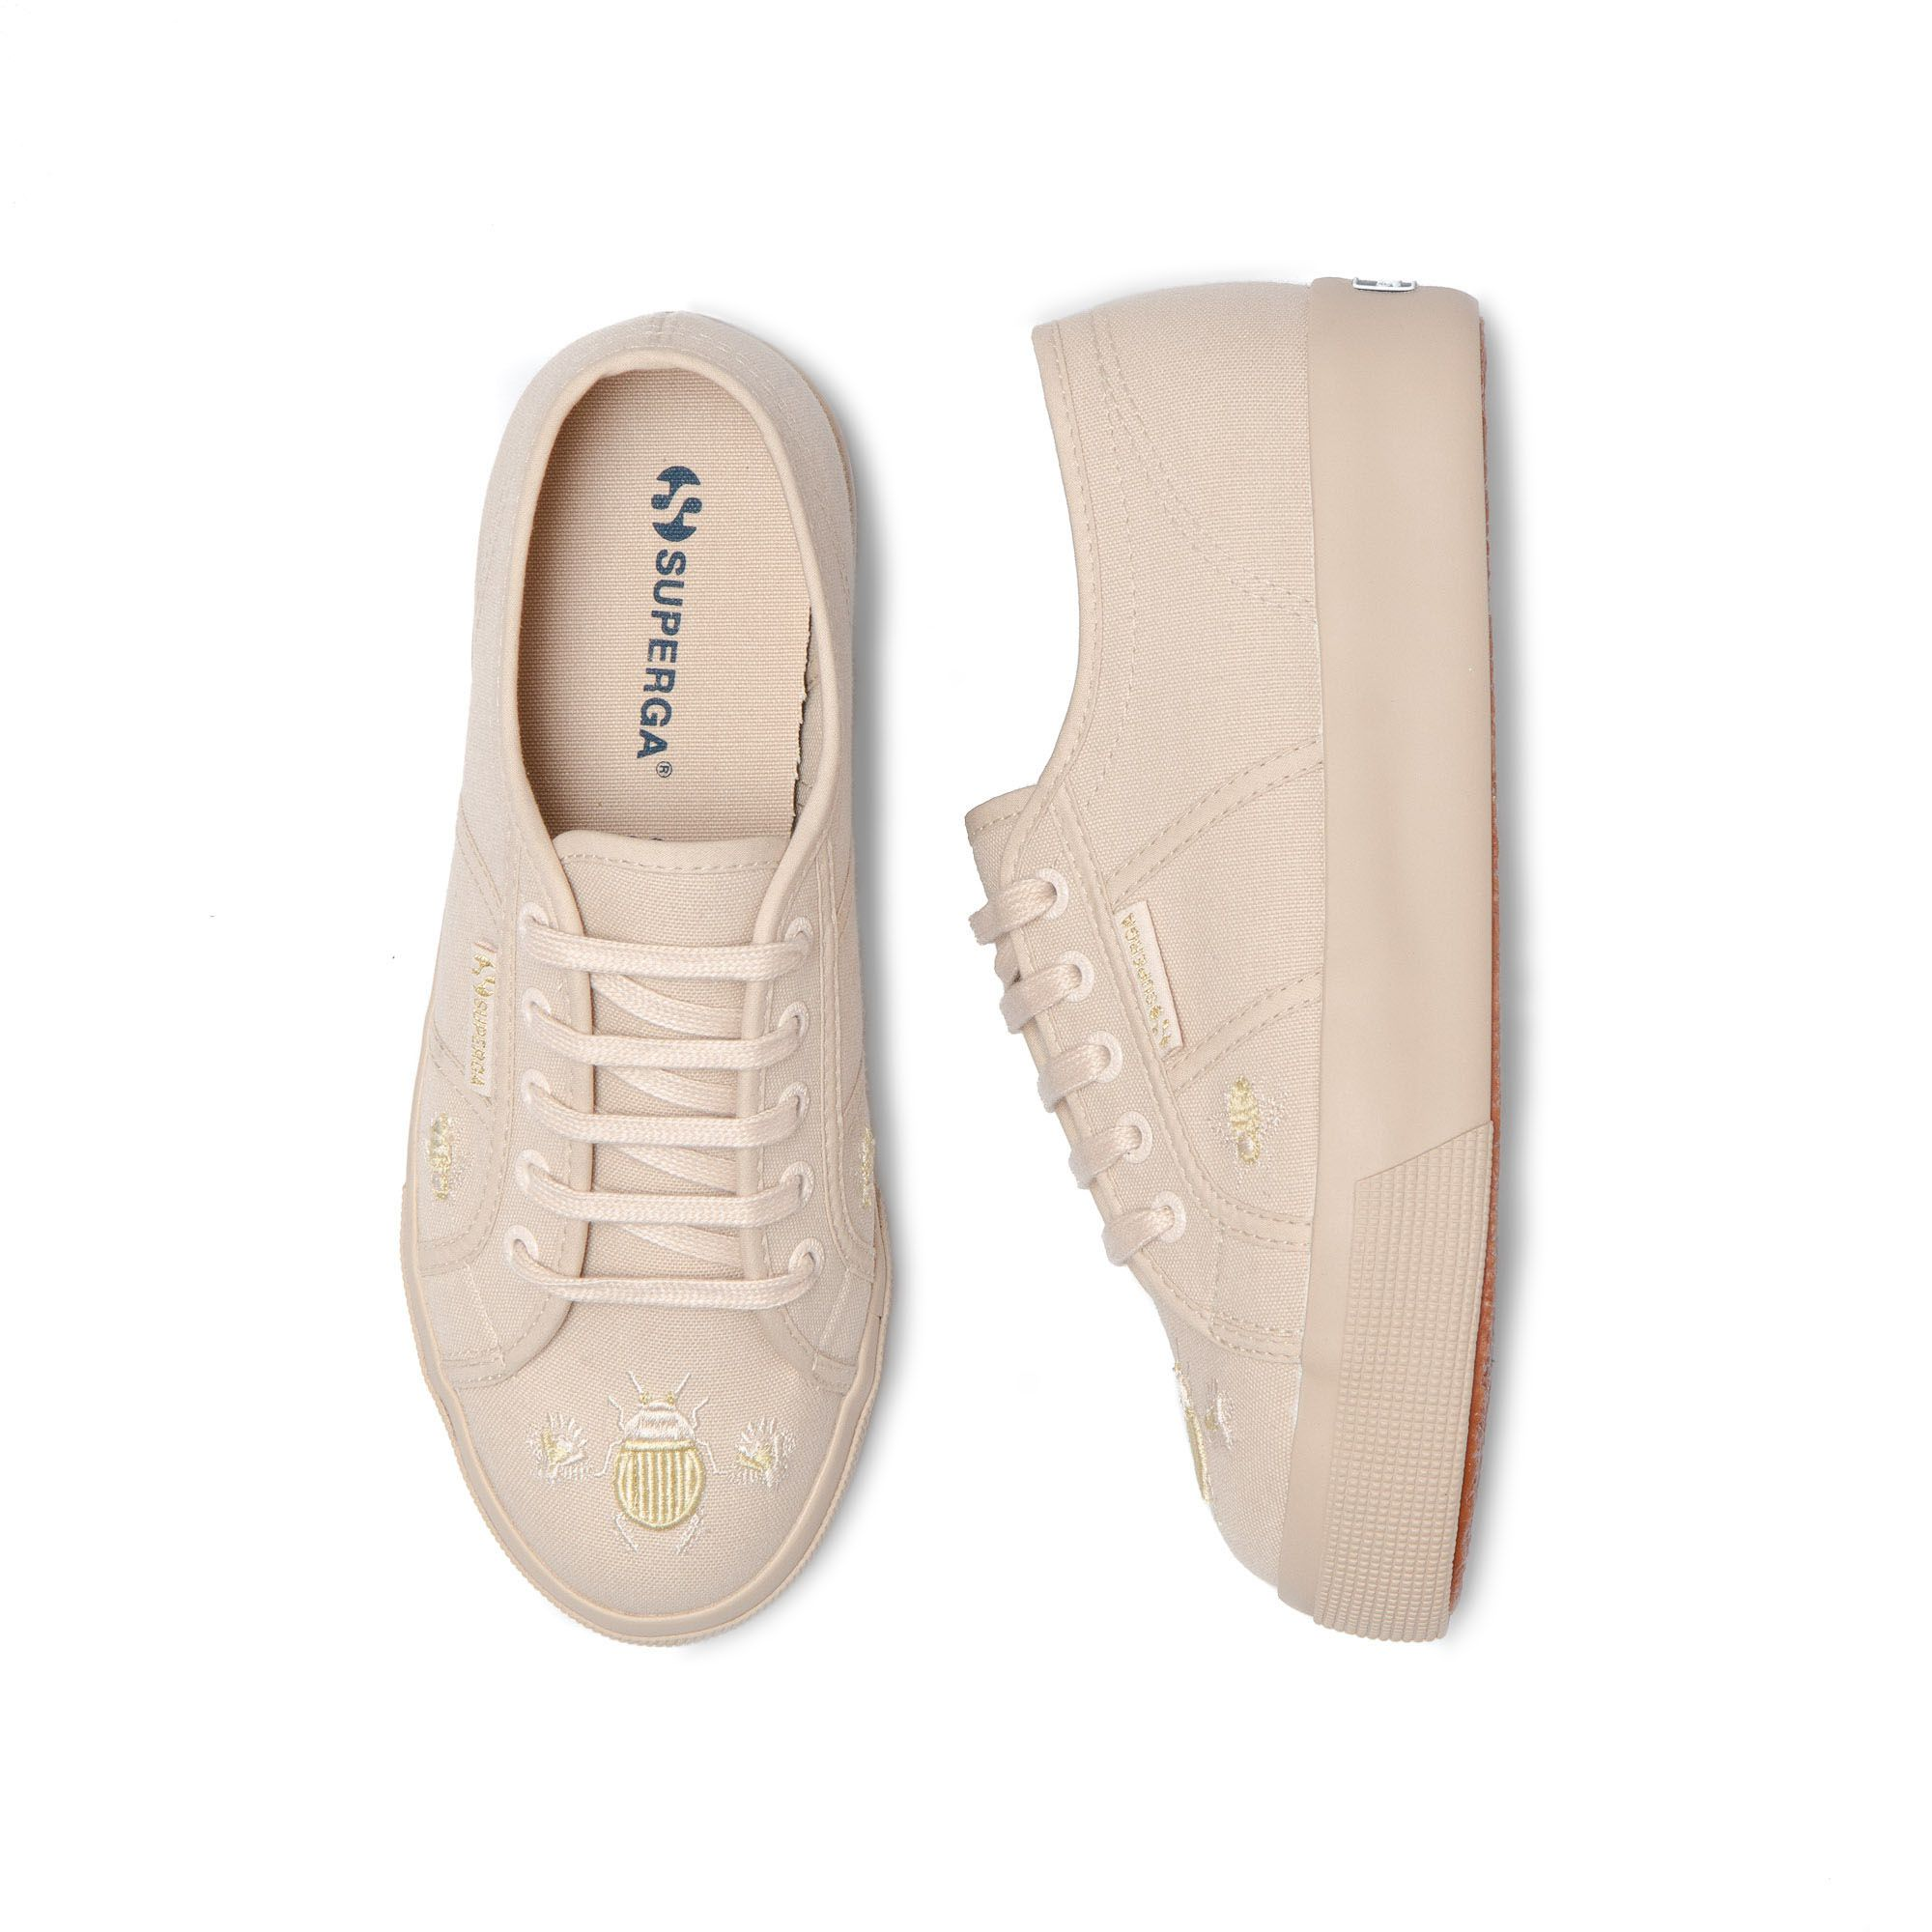 2730 INSECTEMBROIDE FULL BEIGE - GOLD